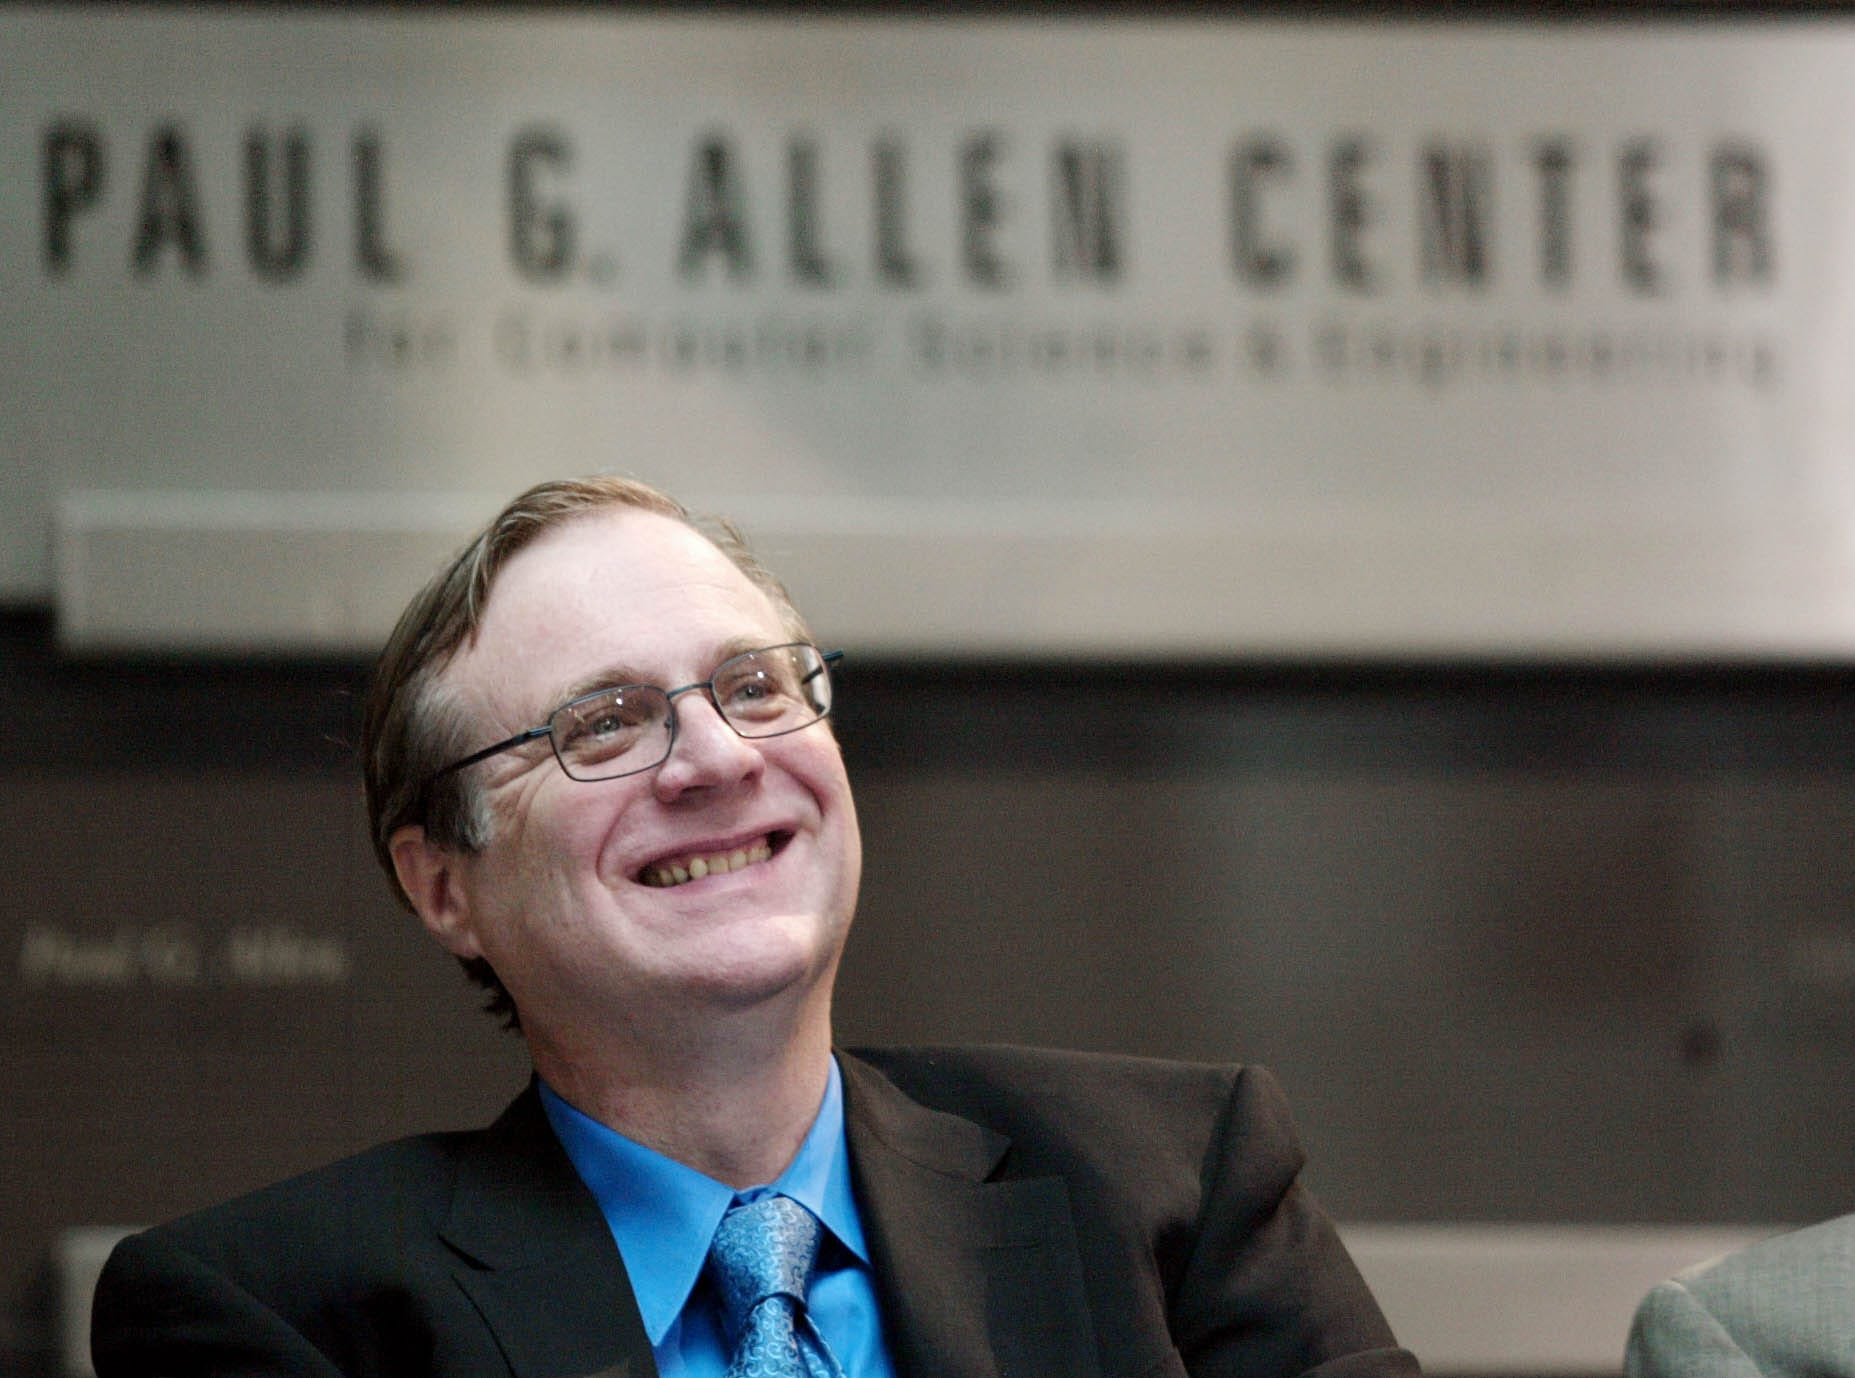 Paul Allen, Microsoft co-founder, smiles as he listens to other speakers during the dedication of the Paul G. Allen Center for Computer Science & Engineering at the University of Washington in Seattle on Thursday, Oct. 9, 2003. Allen died on Oct. 15, 2018. He was 65.